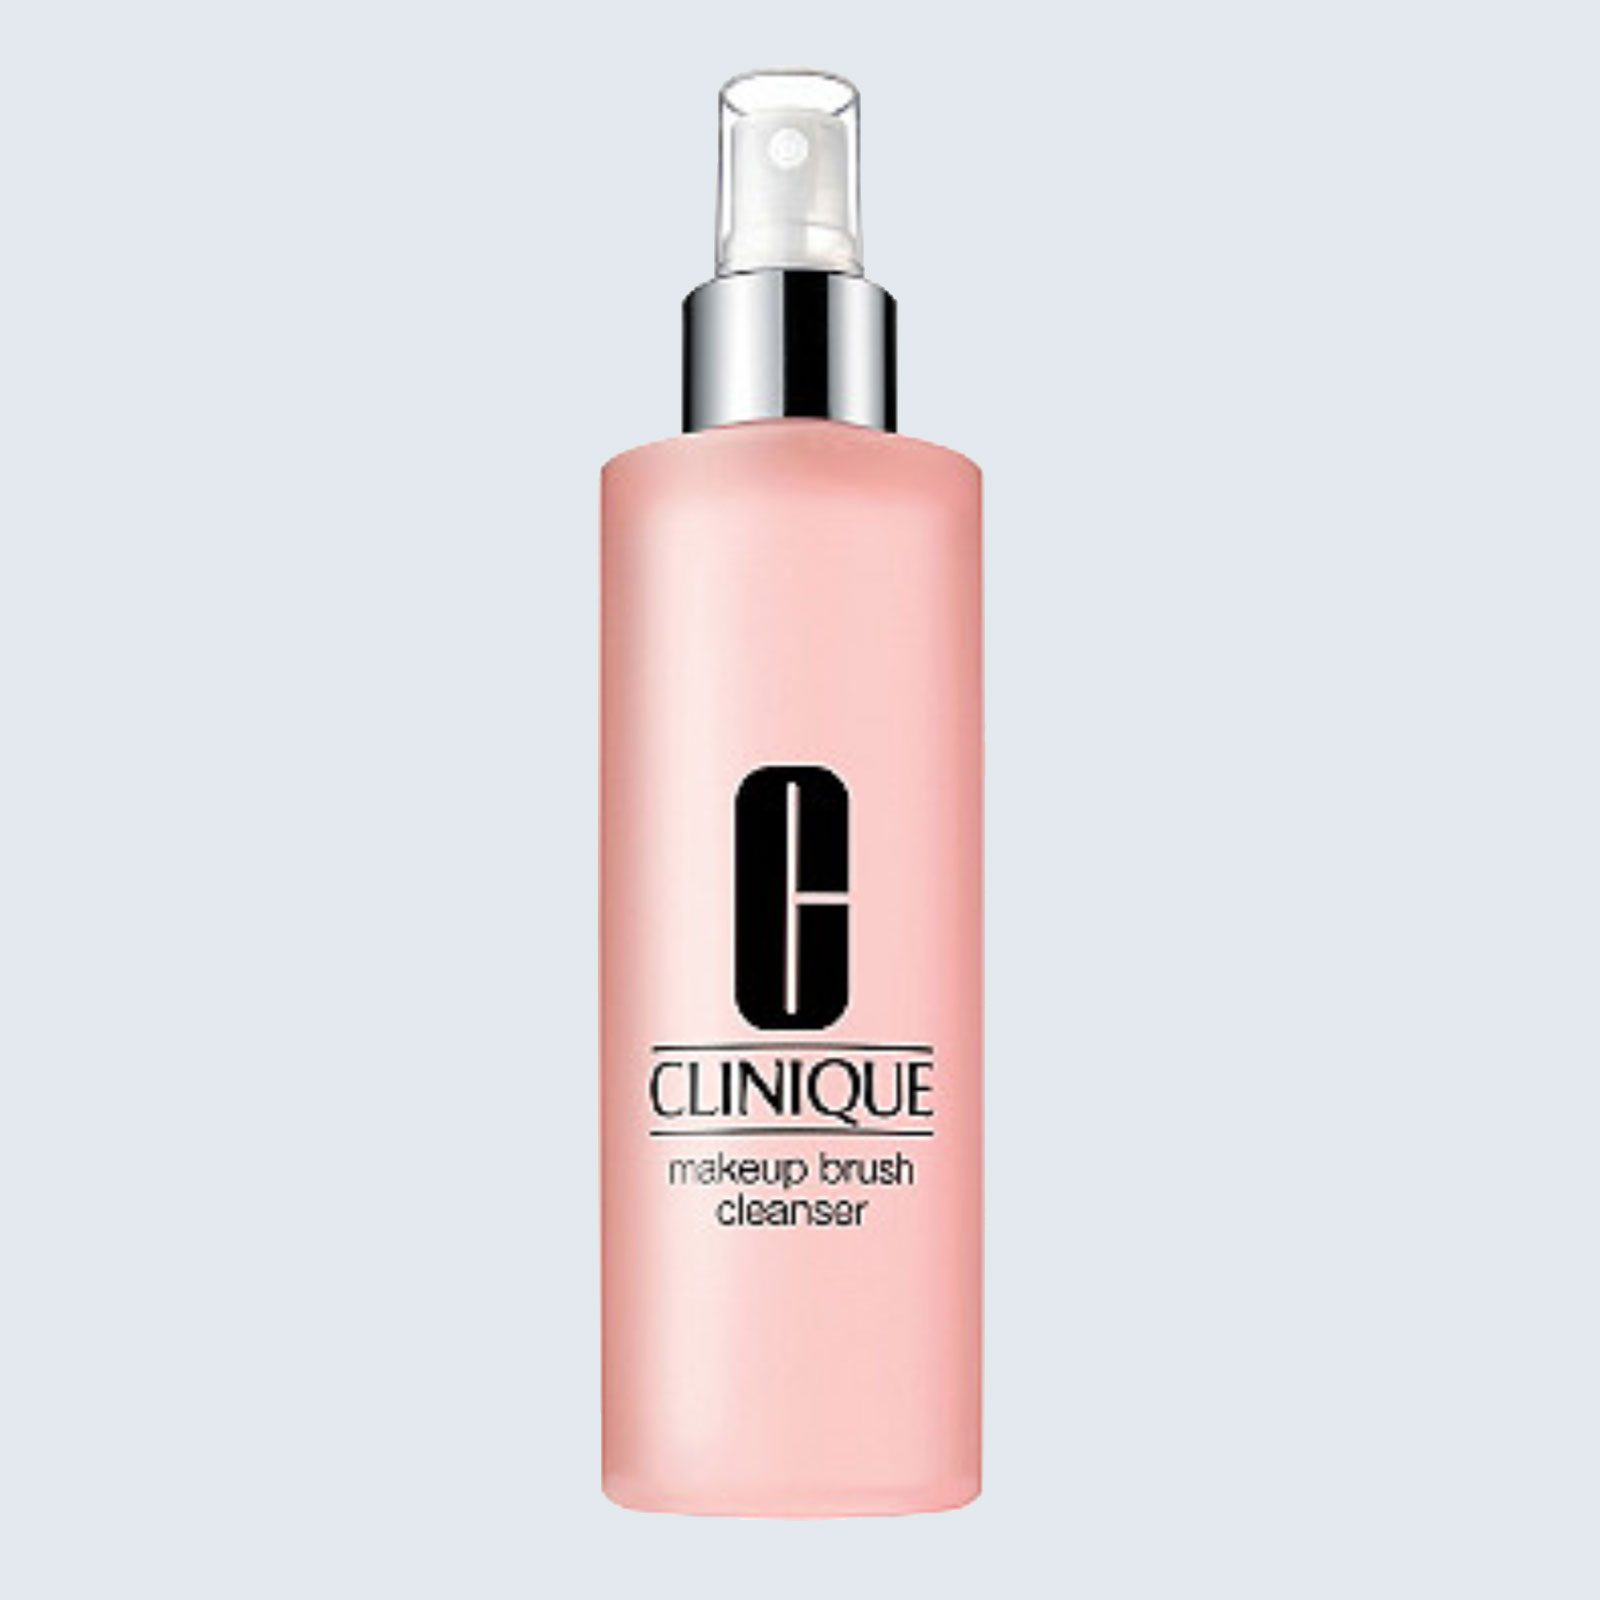 Best makeup brush cleaner for oily skin: Clinique Makeup Brush Cleanser